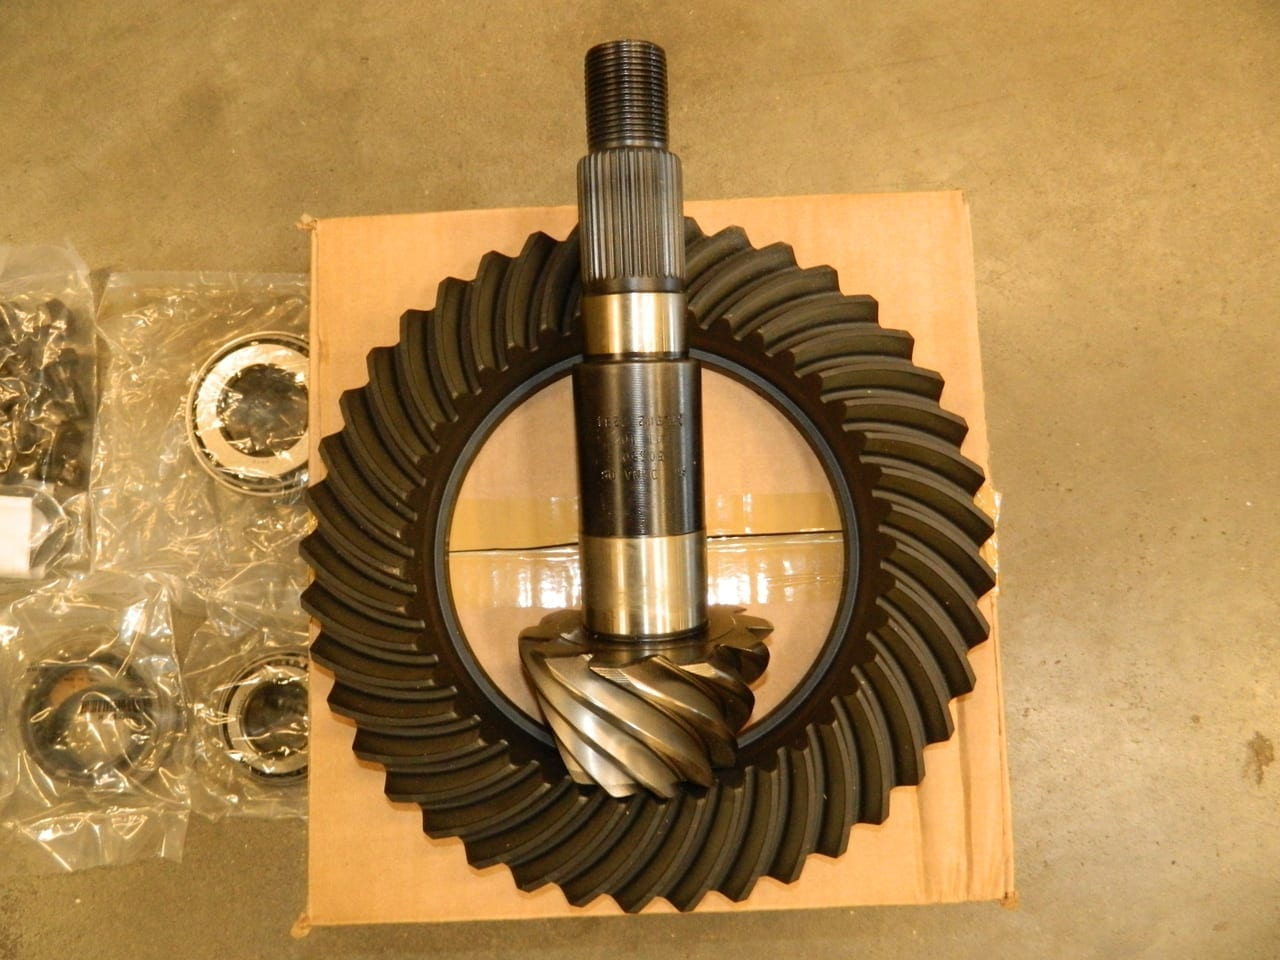 Dana 80 Dodge Chevy 4:10 Ring Gear & Pinion Kit w/Shims Pinion Bearings